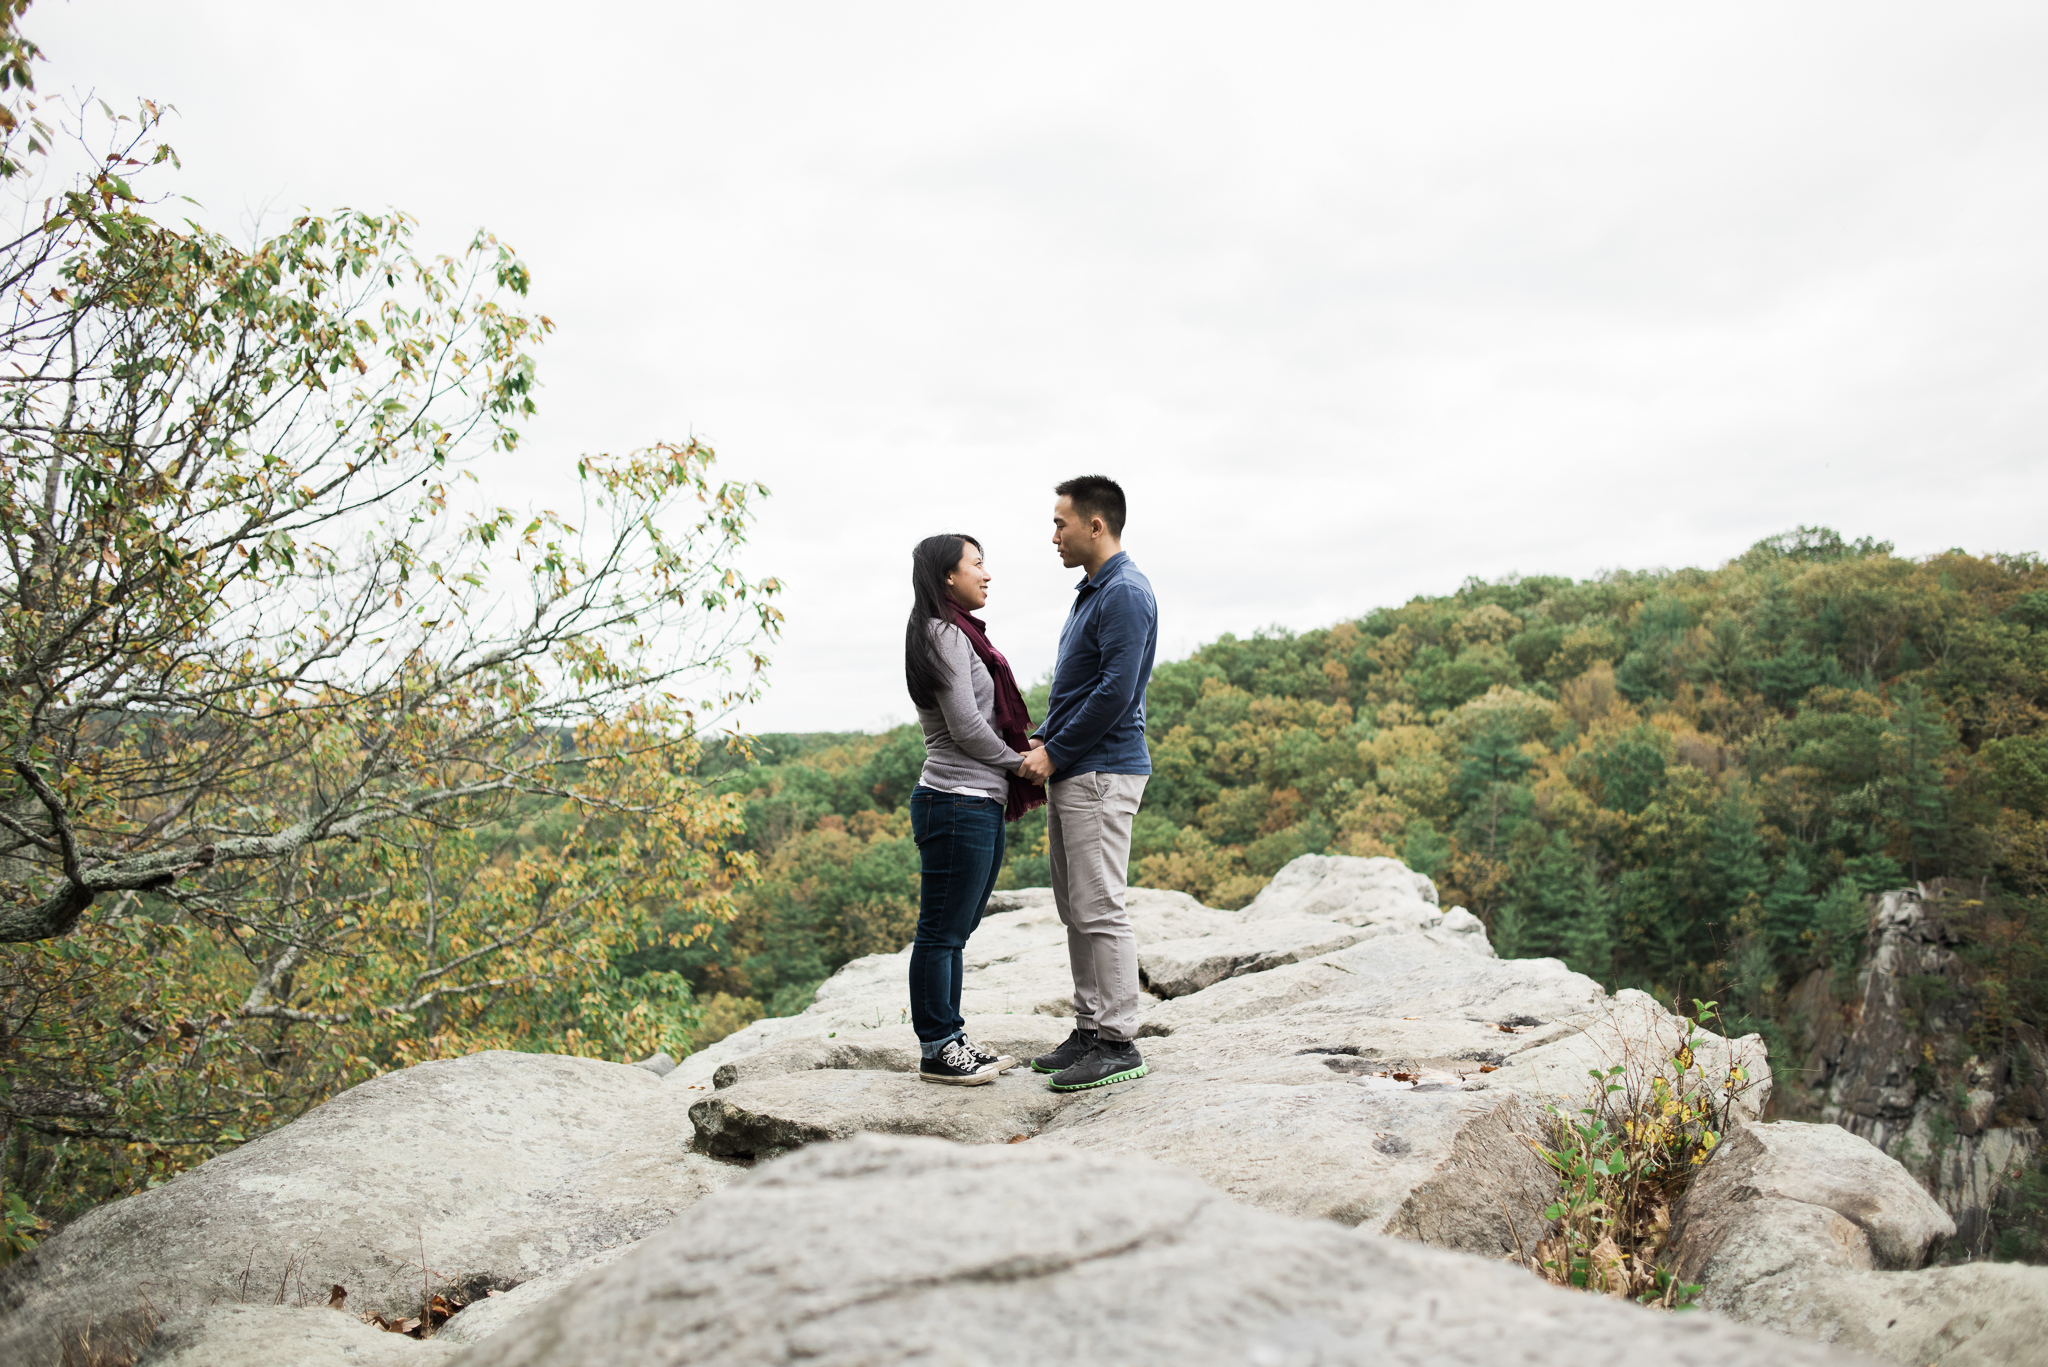 hiking cliff engagement photography washington dc wedding planner sincerely pete